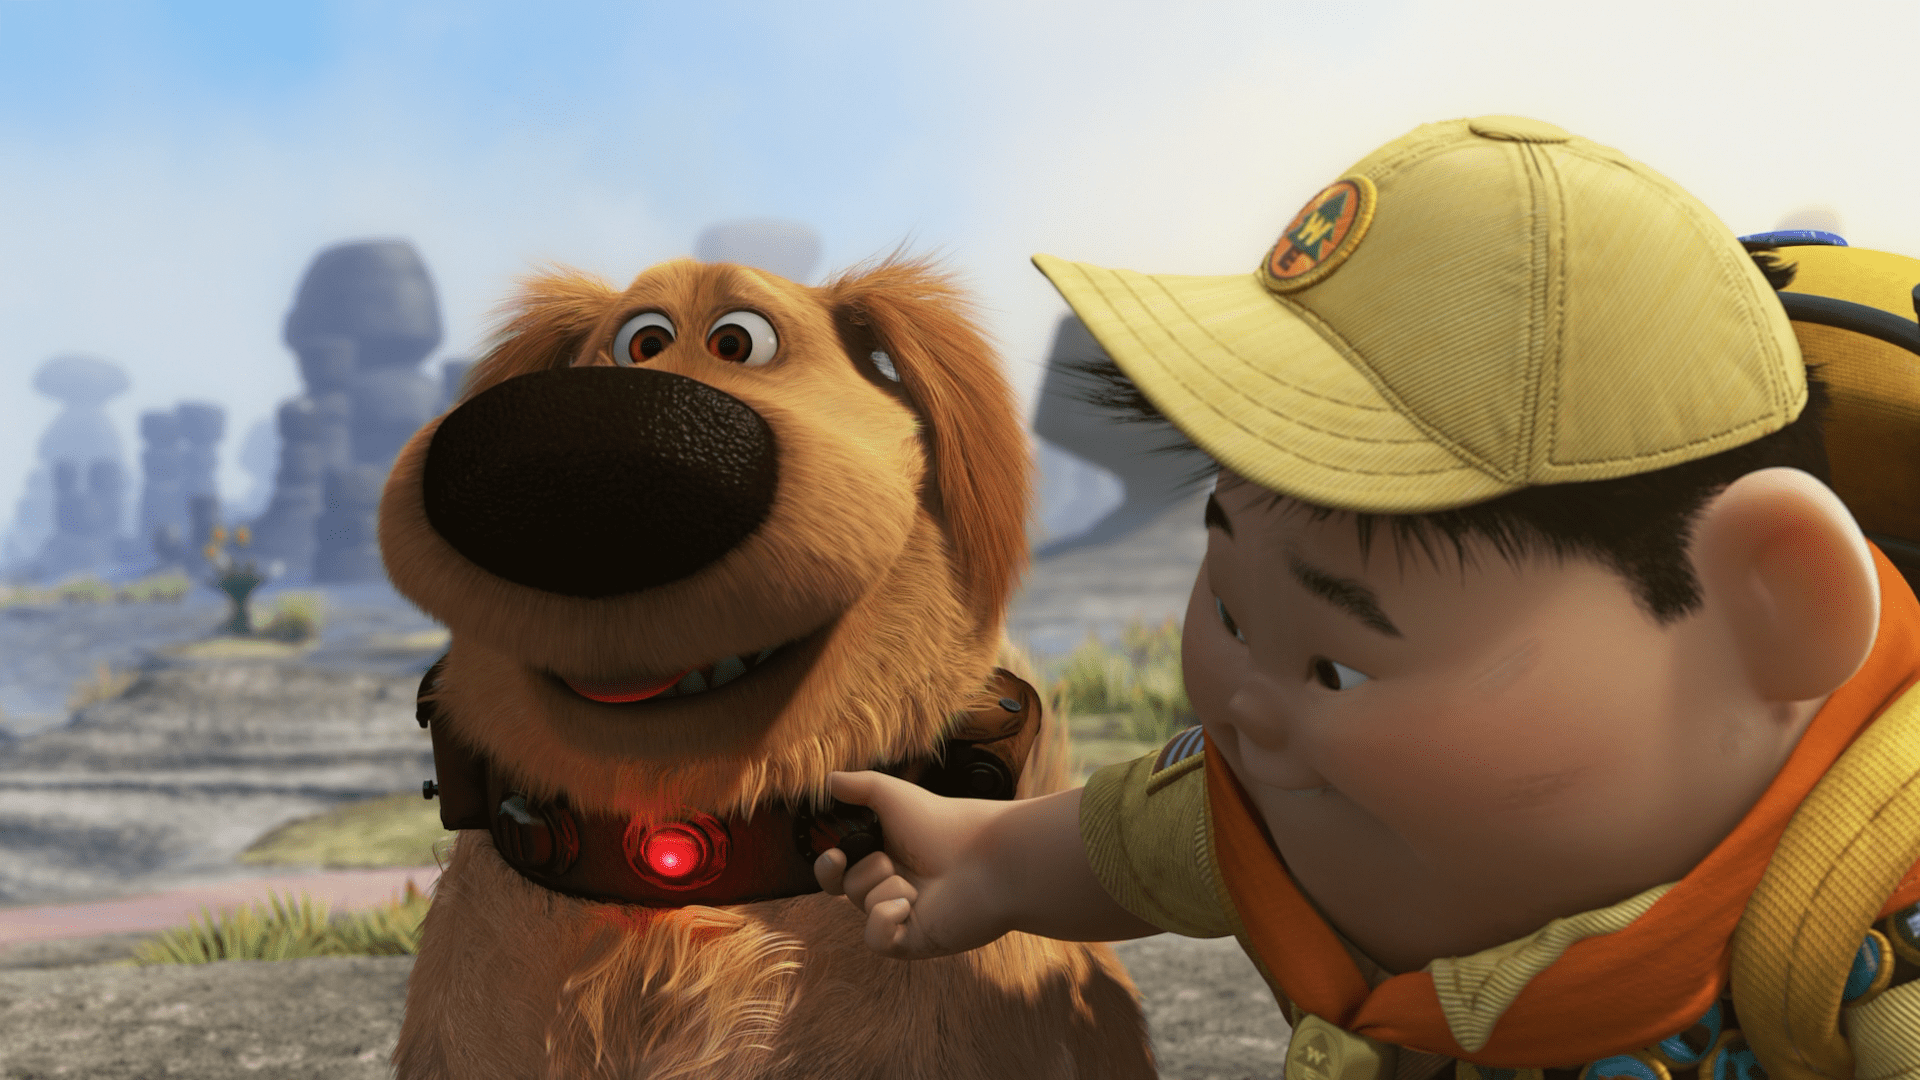 Lampa Pixar Preview: Up In Blu-ray è Davvero Spaventoso! | Dday.it